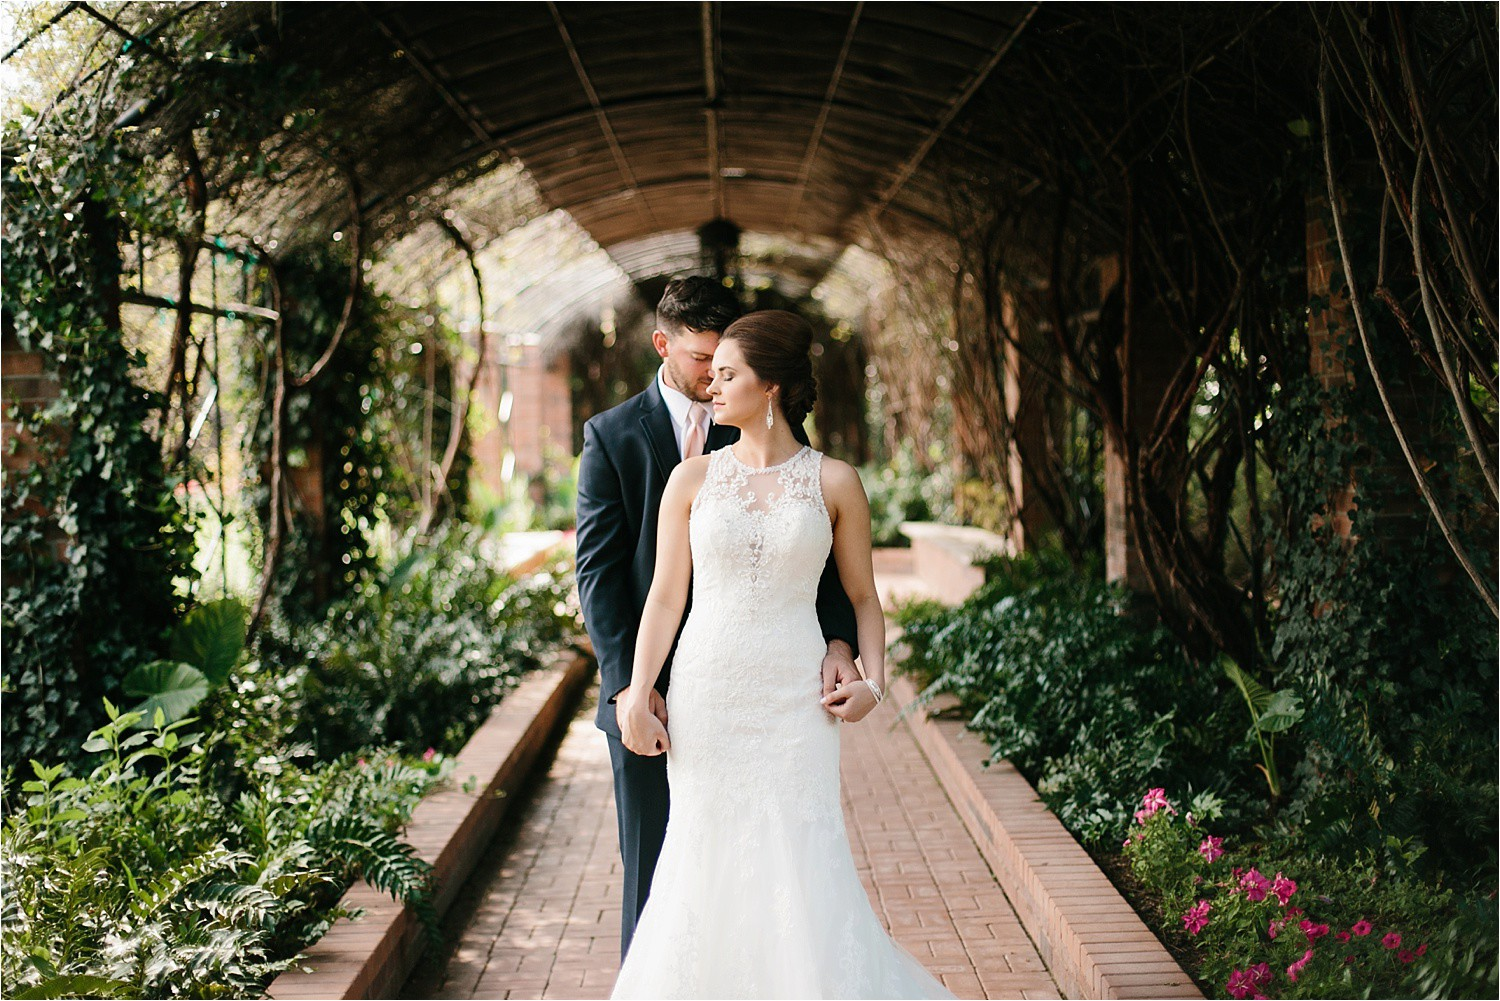 Morgan + Sam || a clark gardens weddding